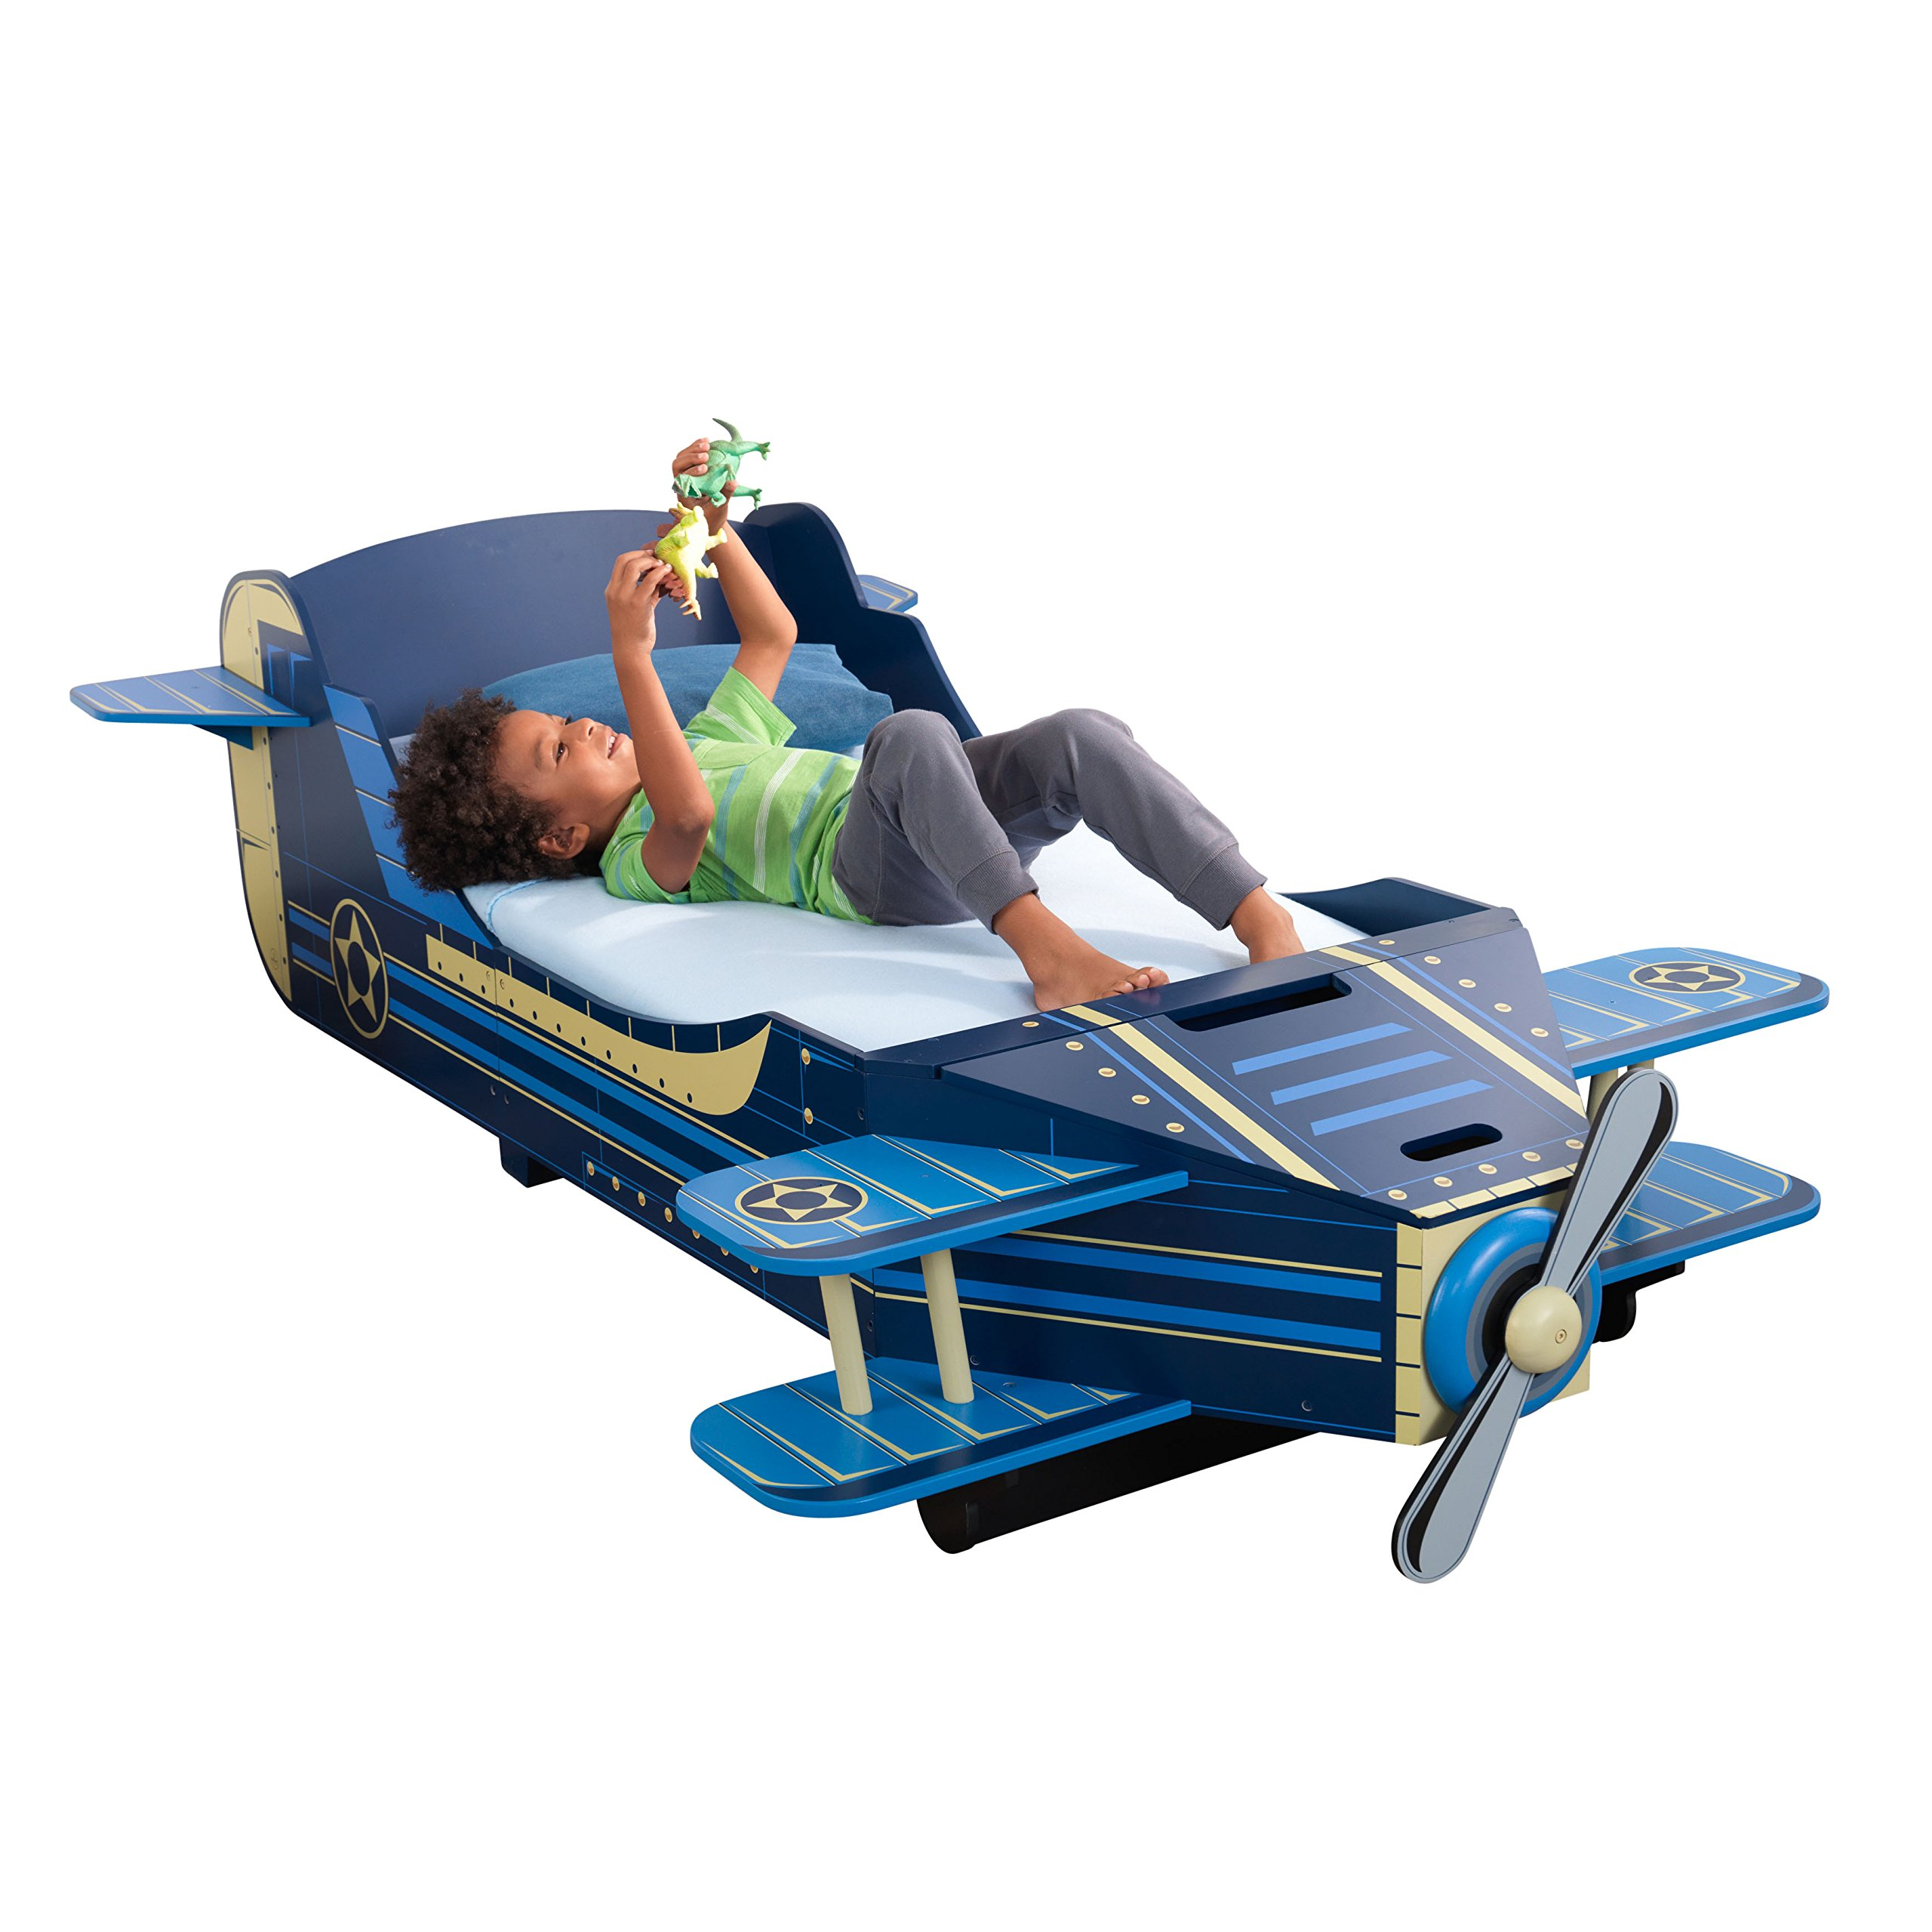 KidKraft Airplane Toddler Bed by KidKraft